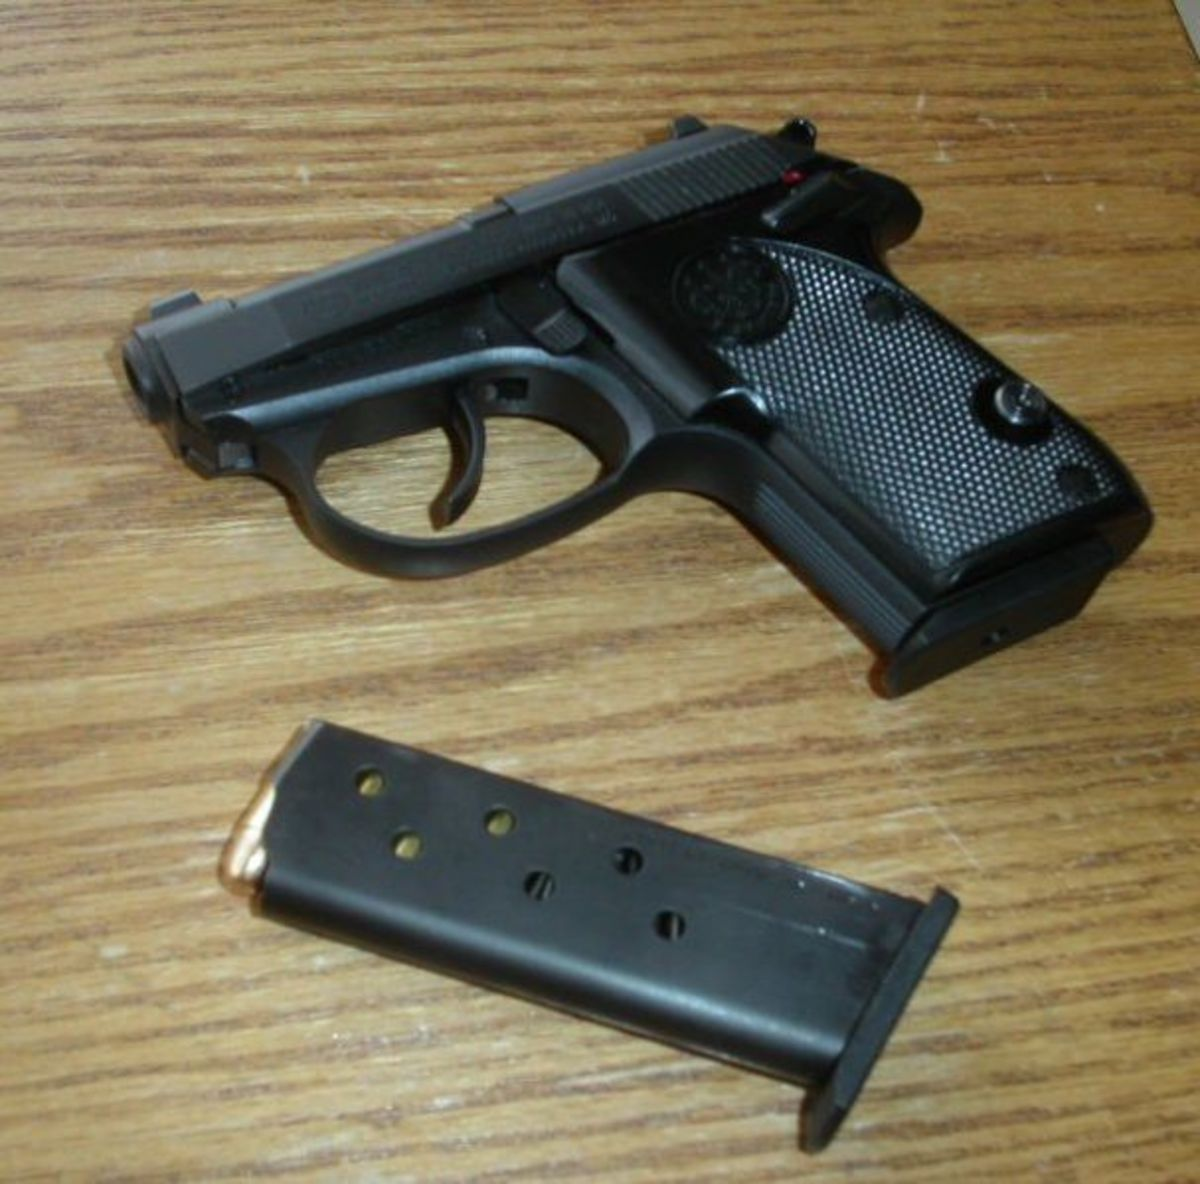 Beretta's Tomcat provides .32 ACP bite in a .25 ACP-size package.